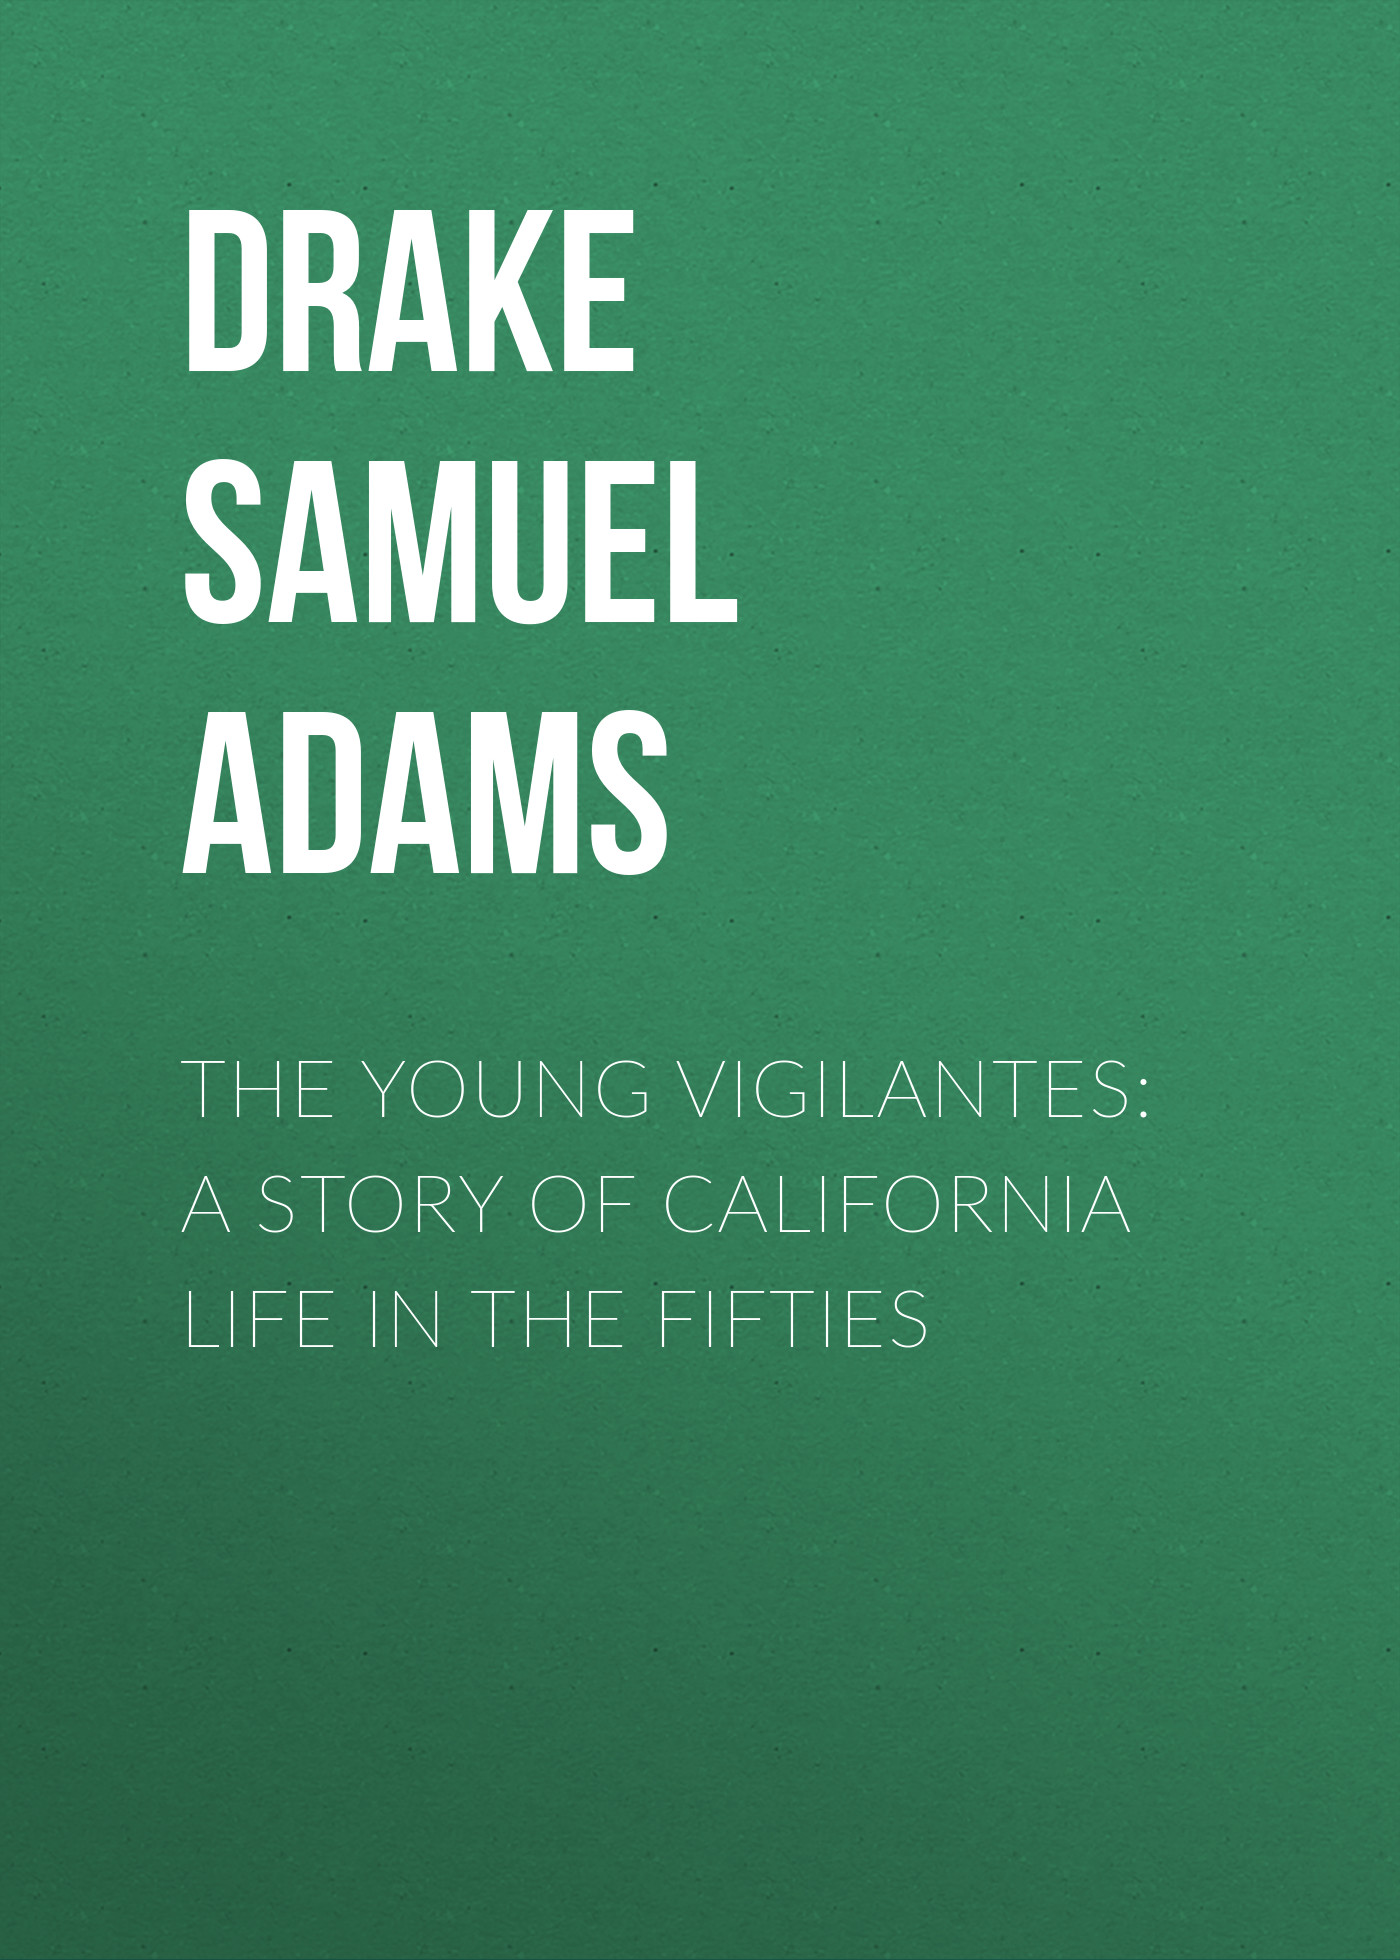 Drake Samuel Adams The Young Vigilantes: A Story of California Life in the Fifties пальто alix story alix story mp002xw13vur